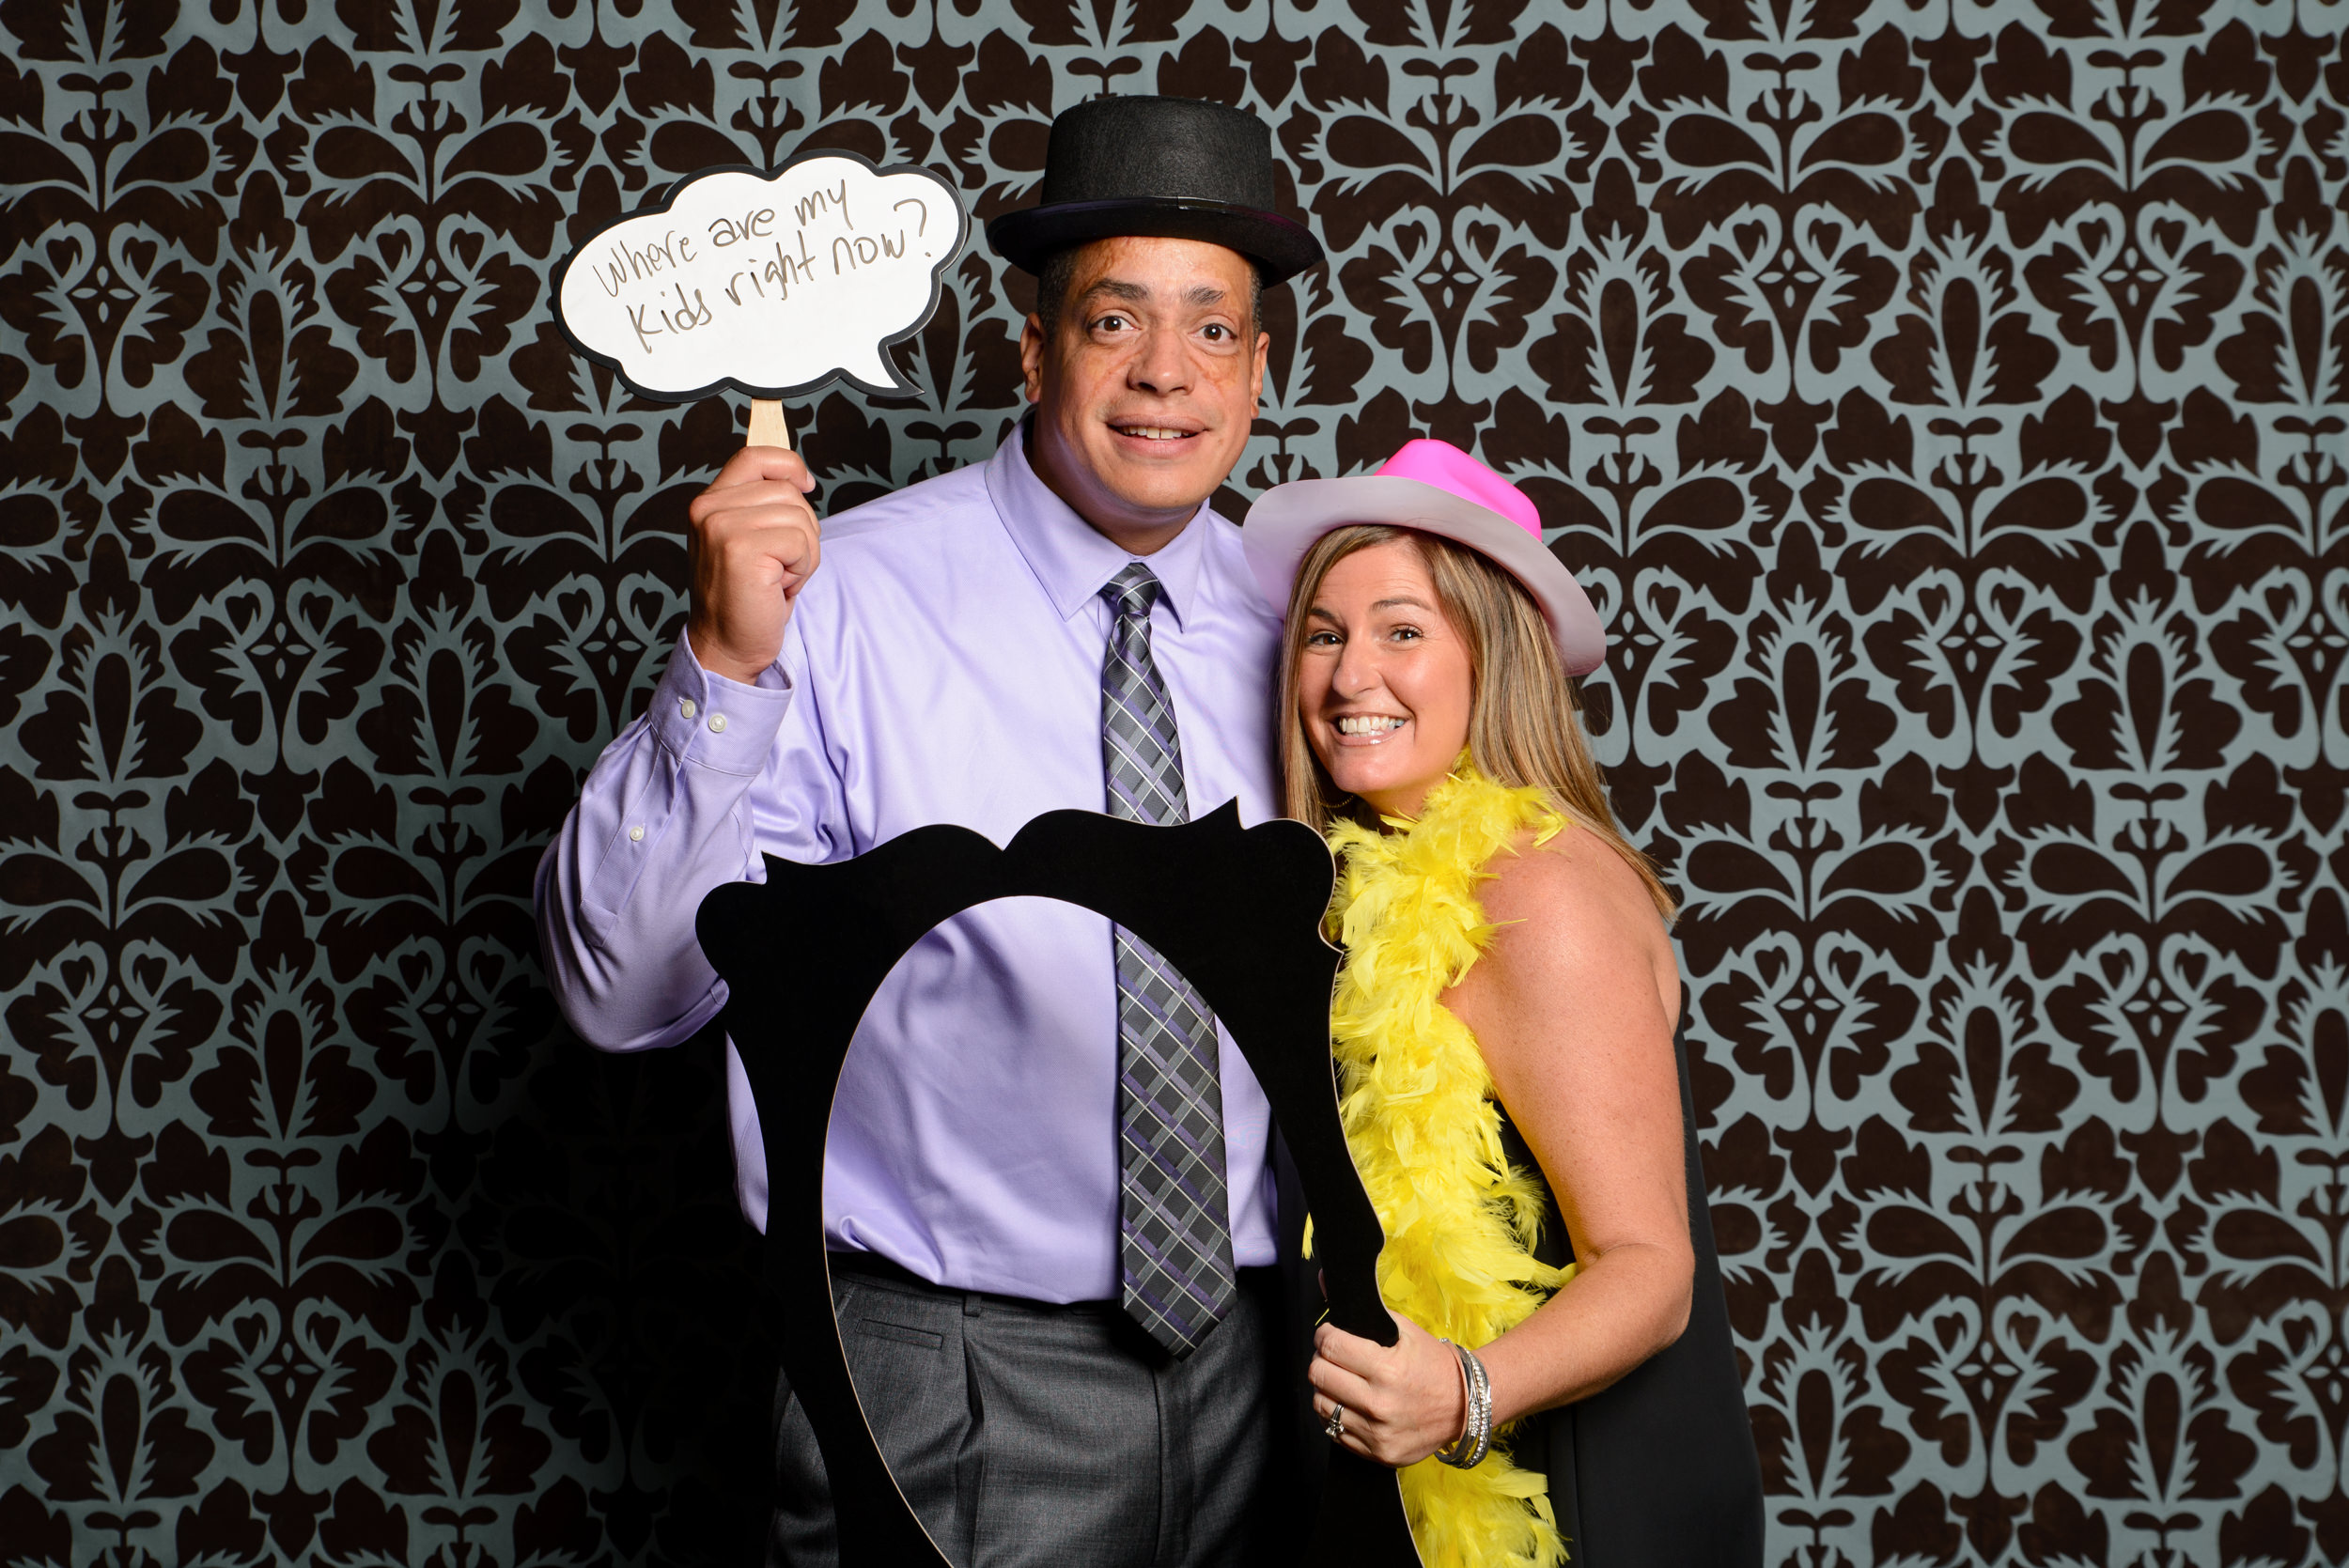 philadelphia-photo-booth-13